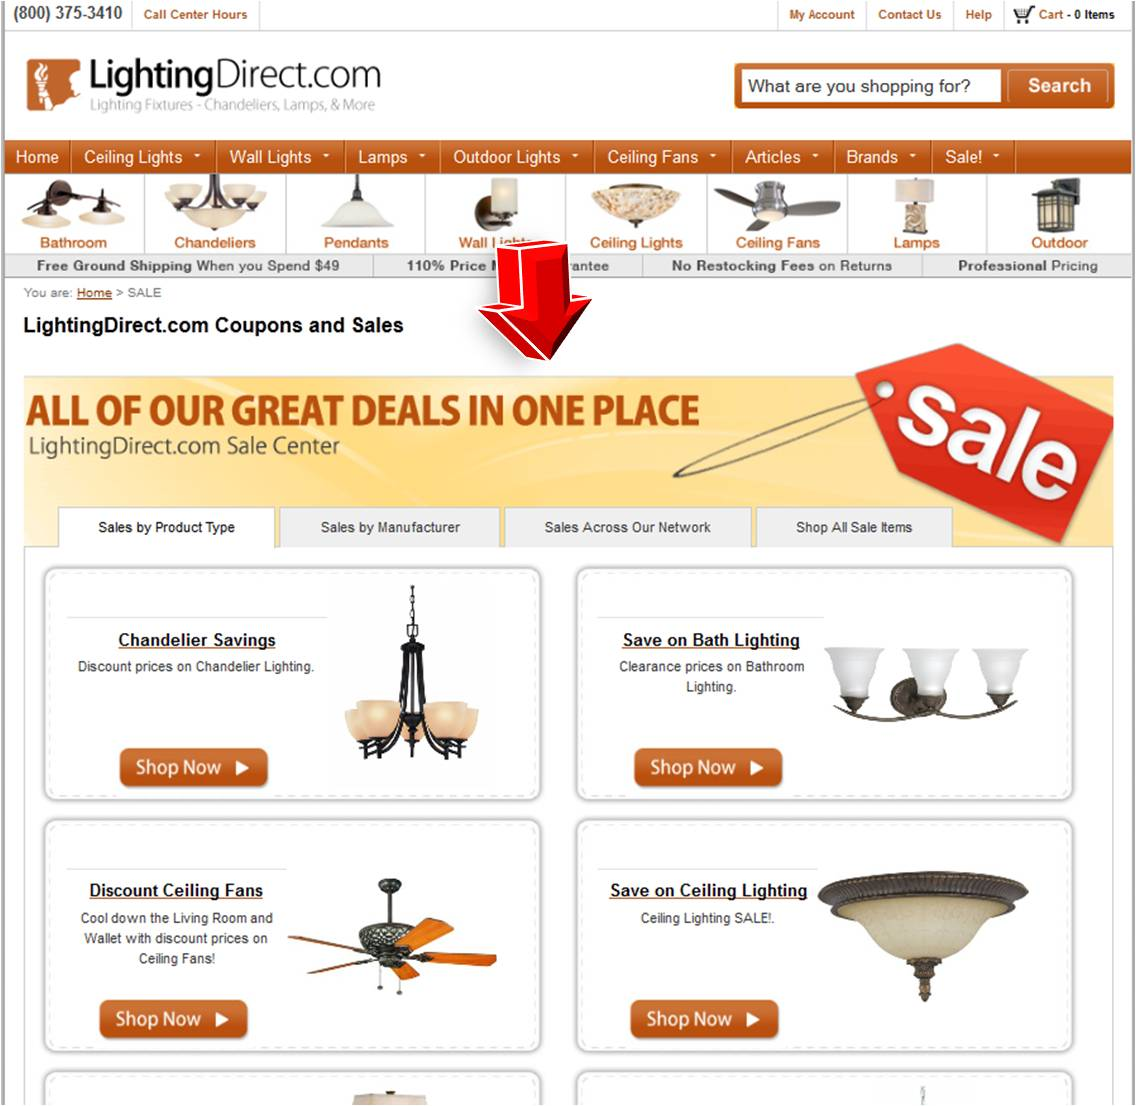 Prairie lights discount coupons